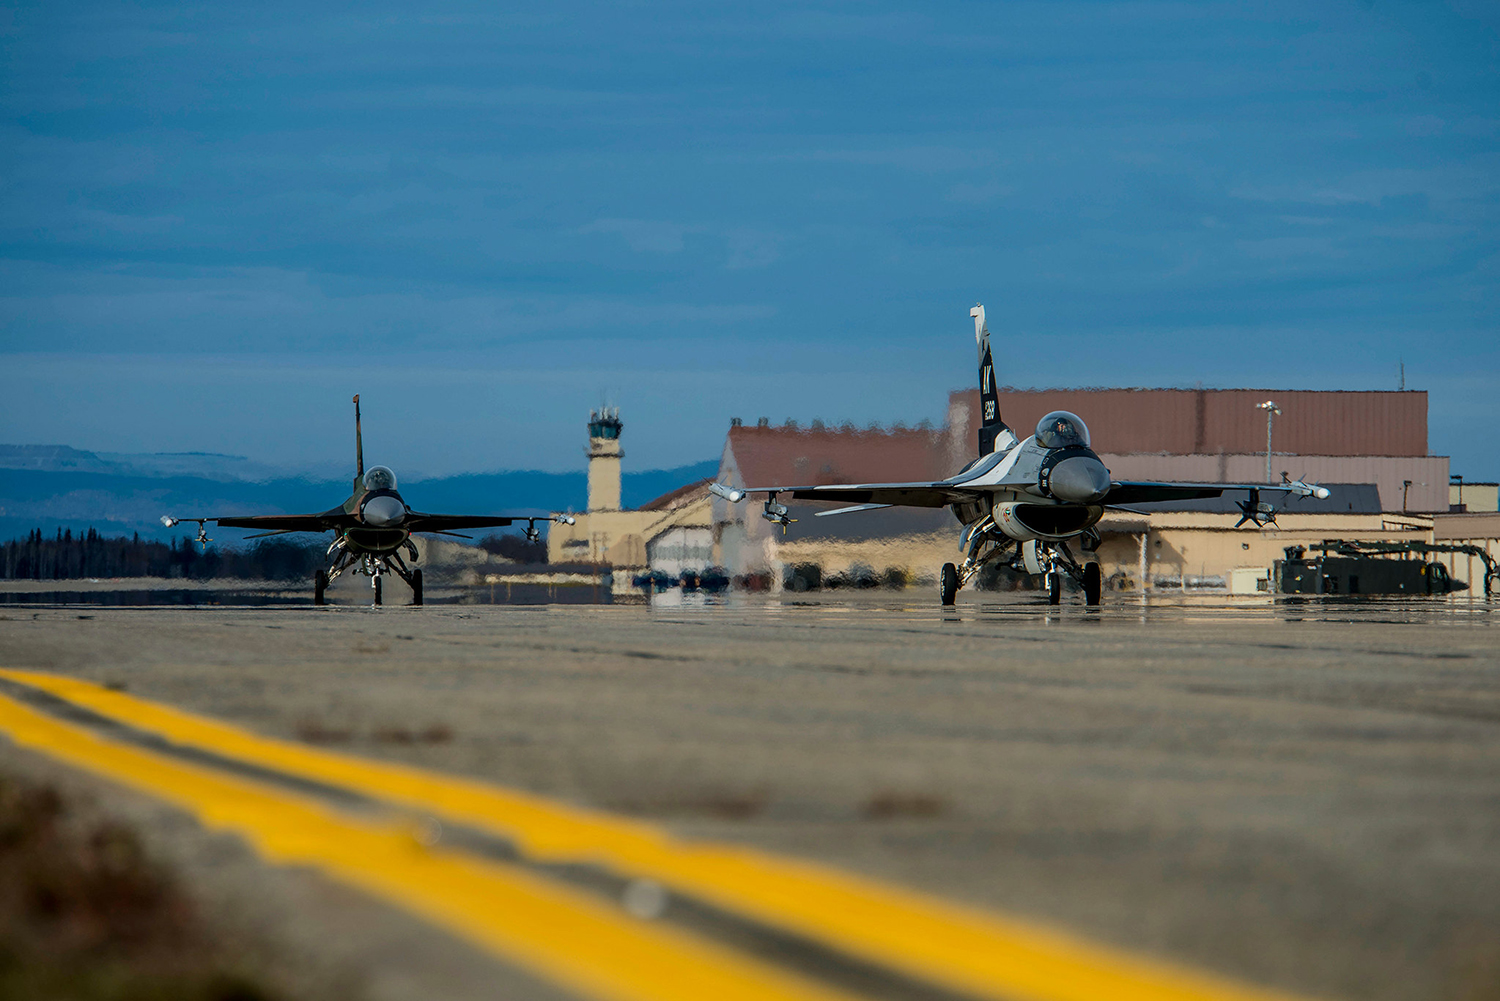 U.S. Air Force F-16 Fighting Falcons taxi on the flightline at Eielson Air Force Base, Alaska, Sept. 24, 2019. (Airman 1st Class Aaron Larue Guerrisky/Air Force)